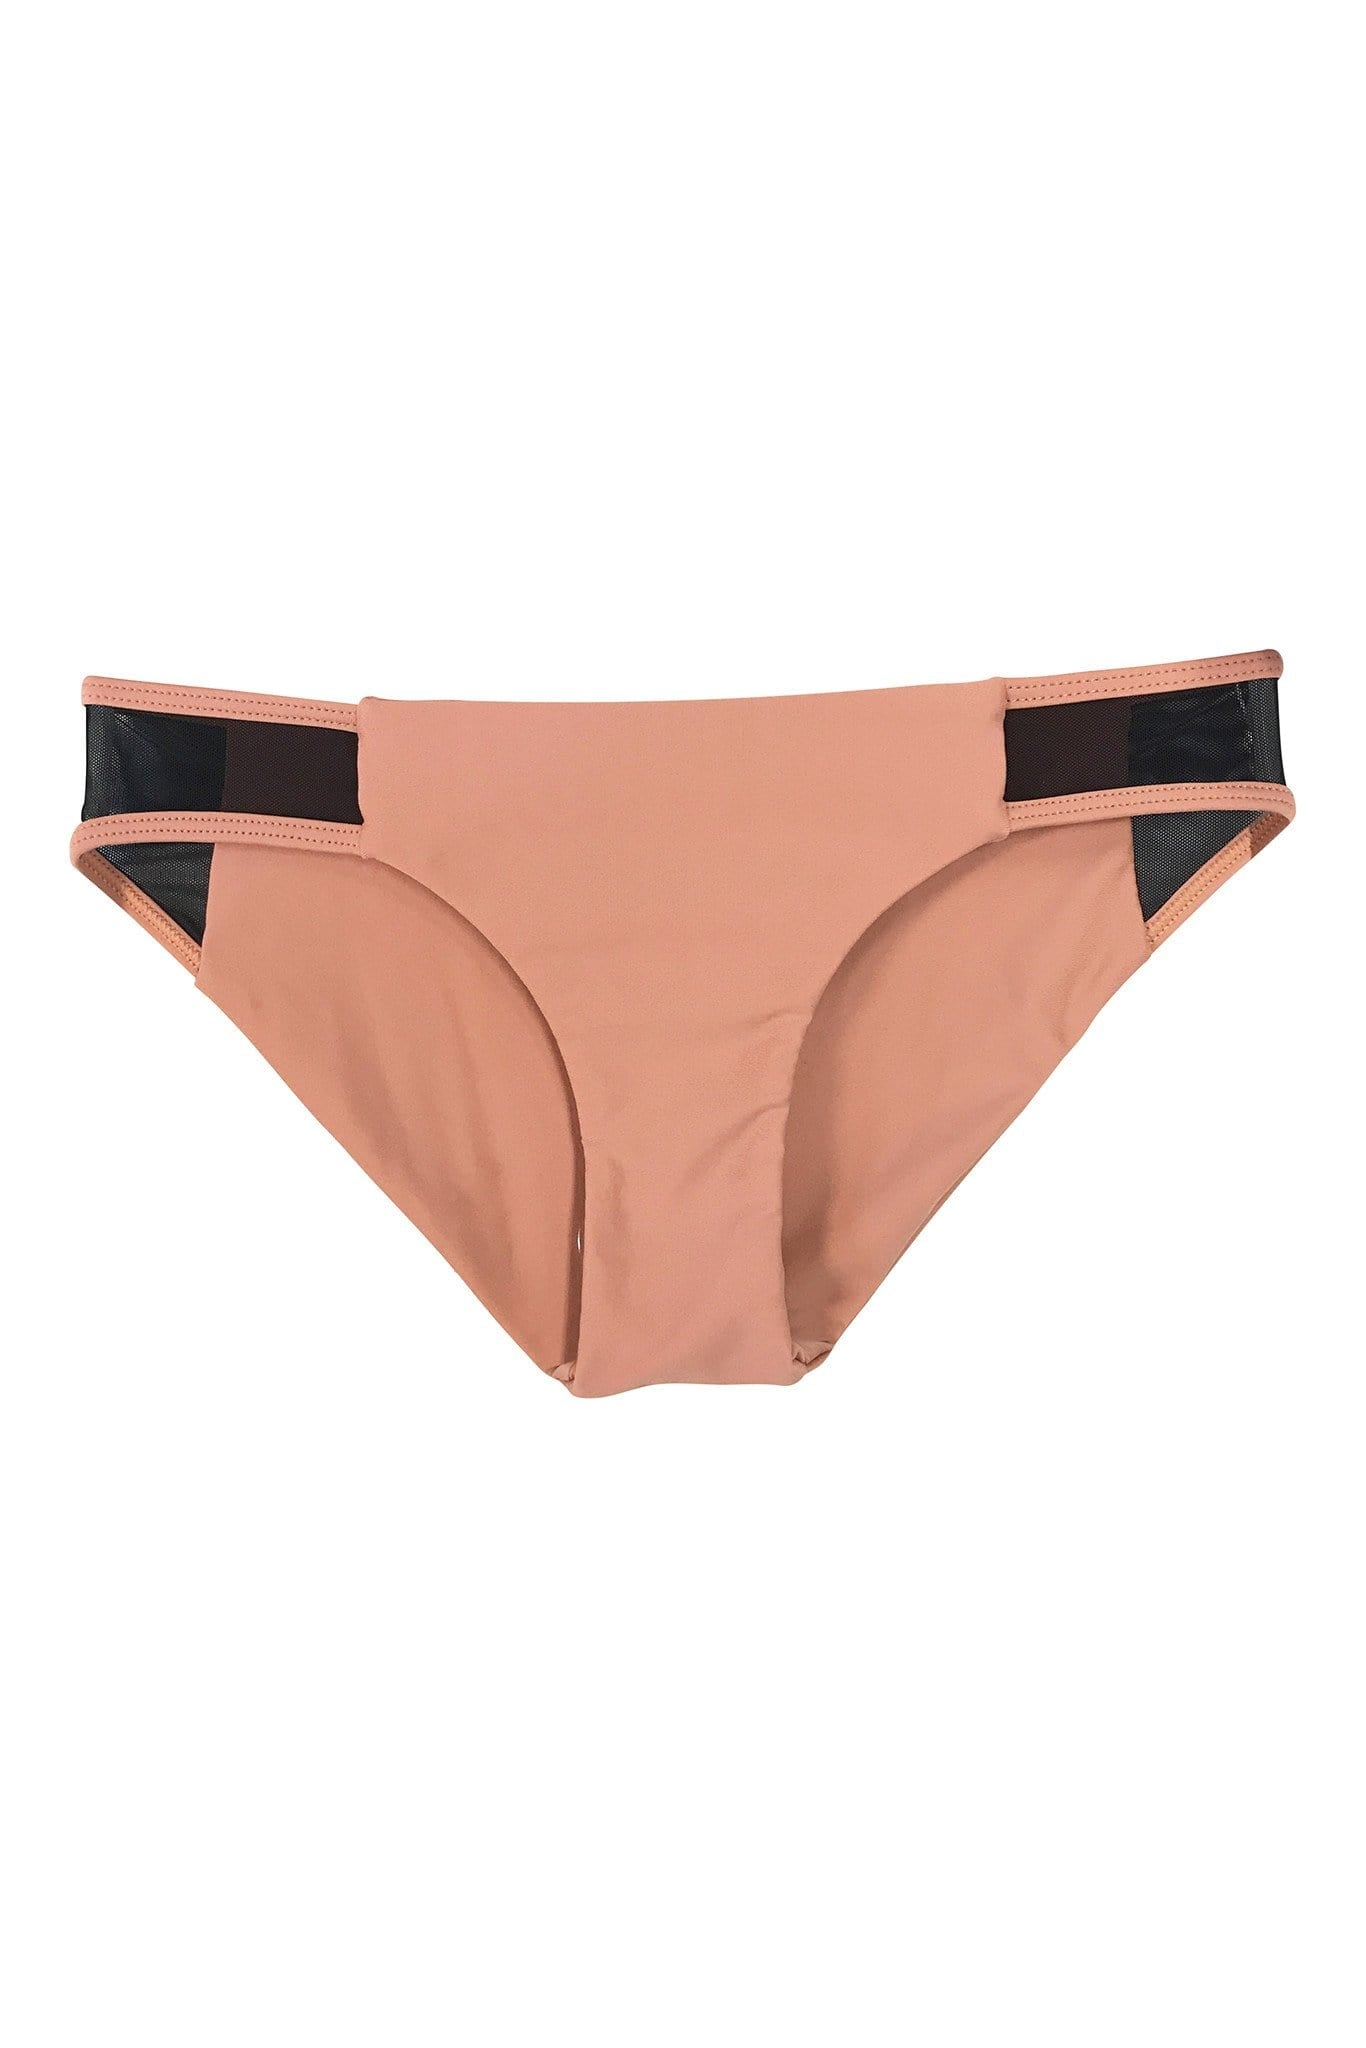 *SALE* Kaili Bottom Honey